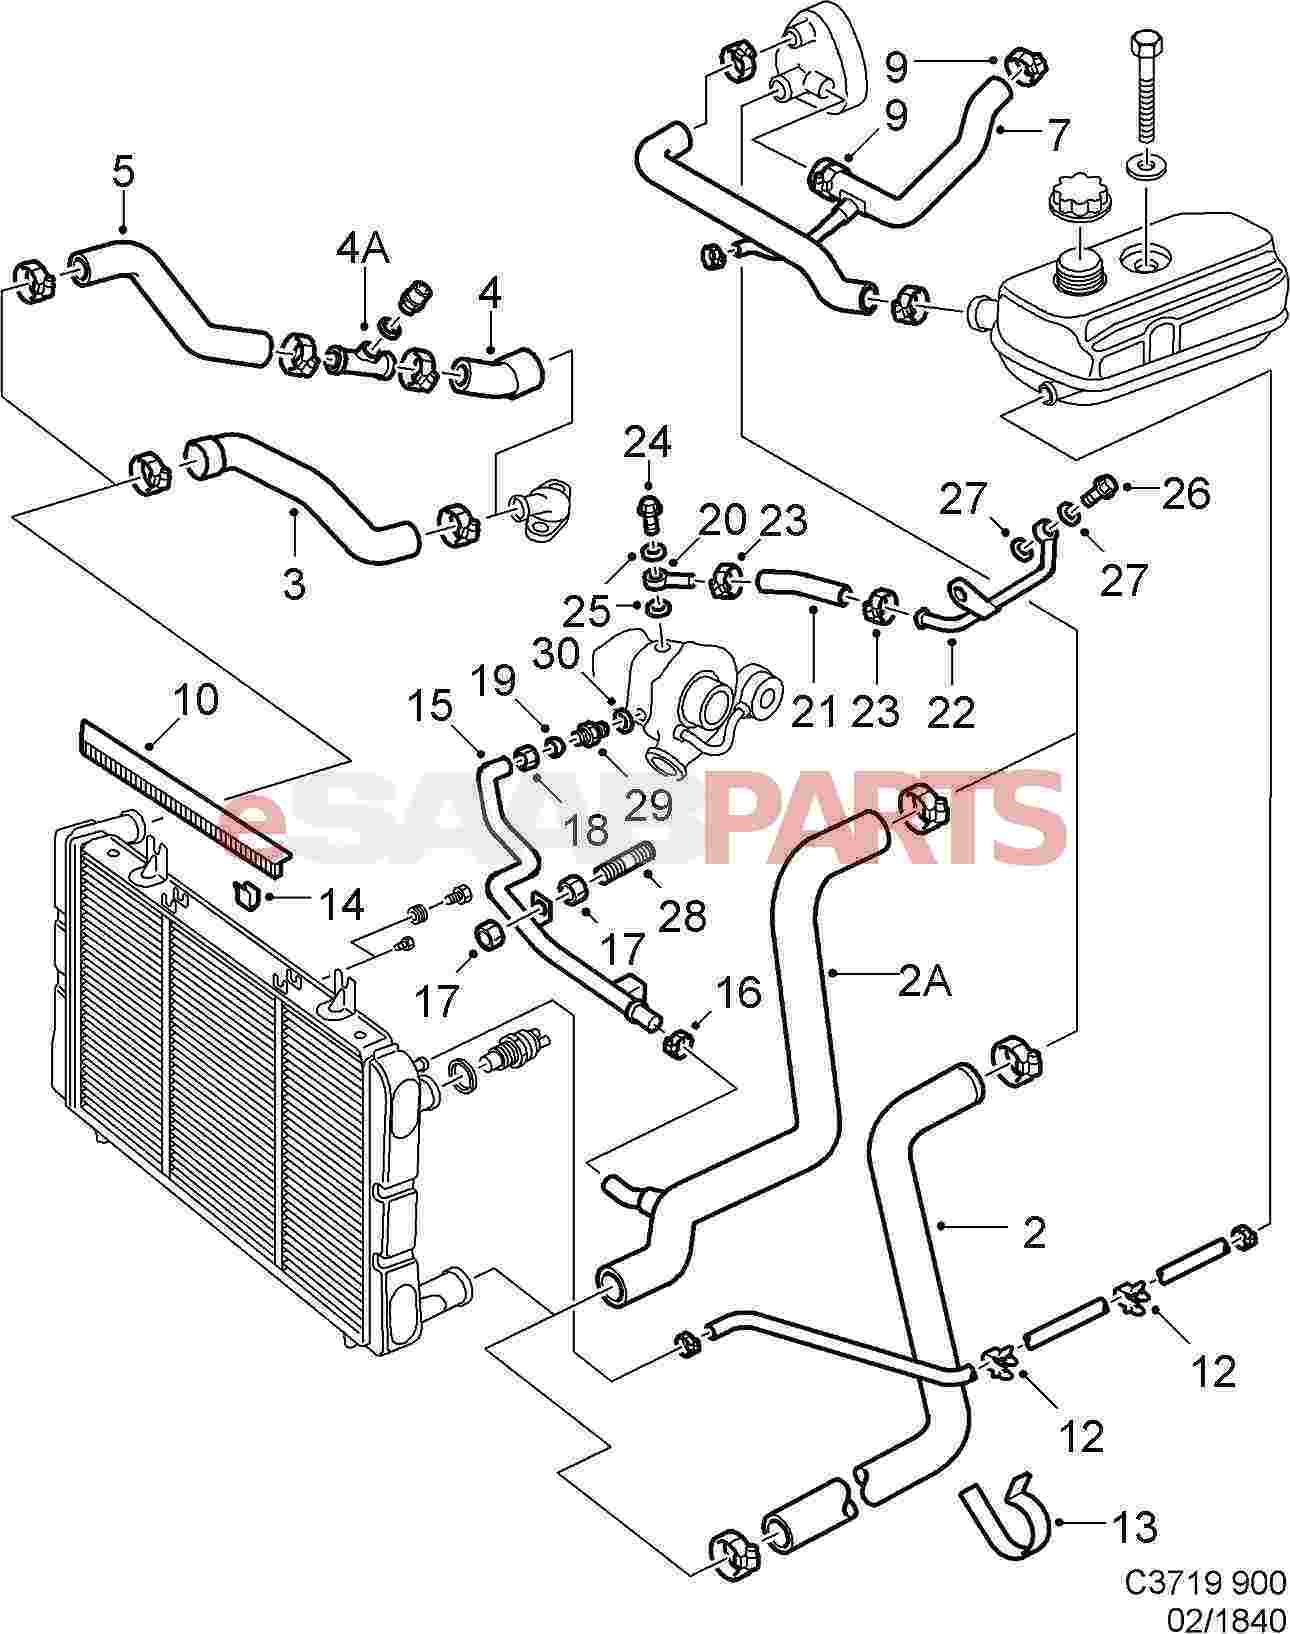 2011 jetta engine diagram wiring library D15B7 Turbo Build diagram image 15